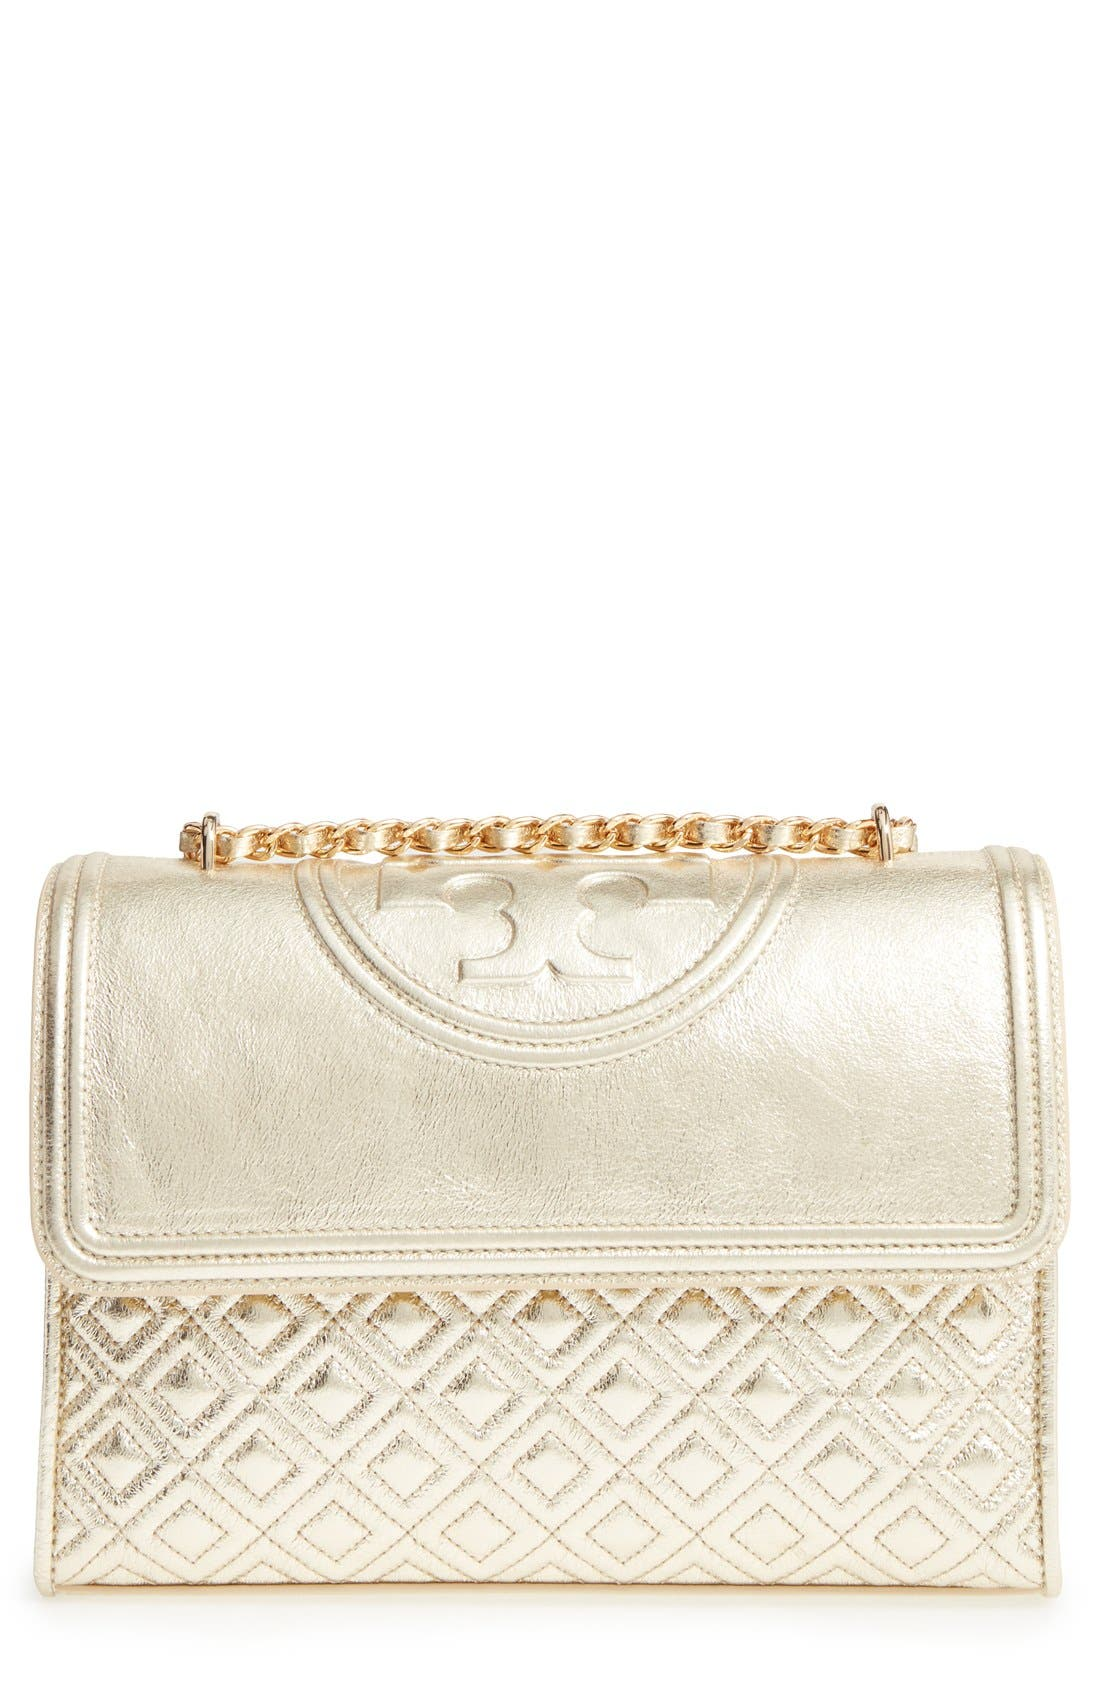 Alternate Image 1 Selected - Tory Burch Fleming Leather Shoulder Bag